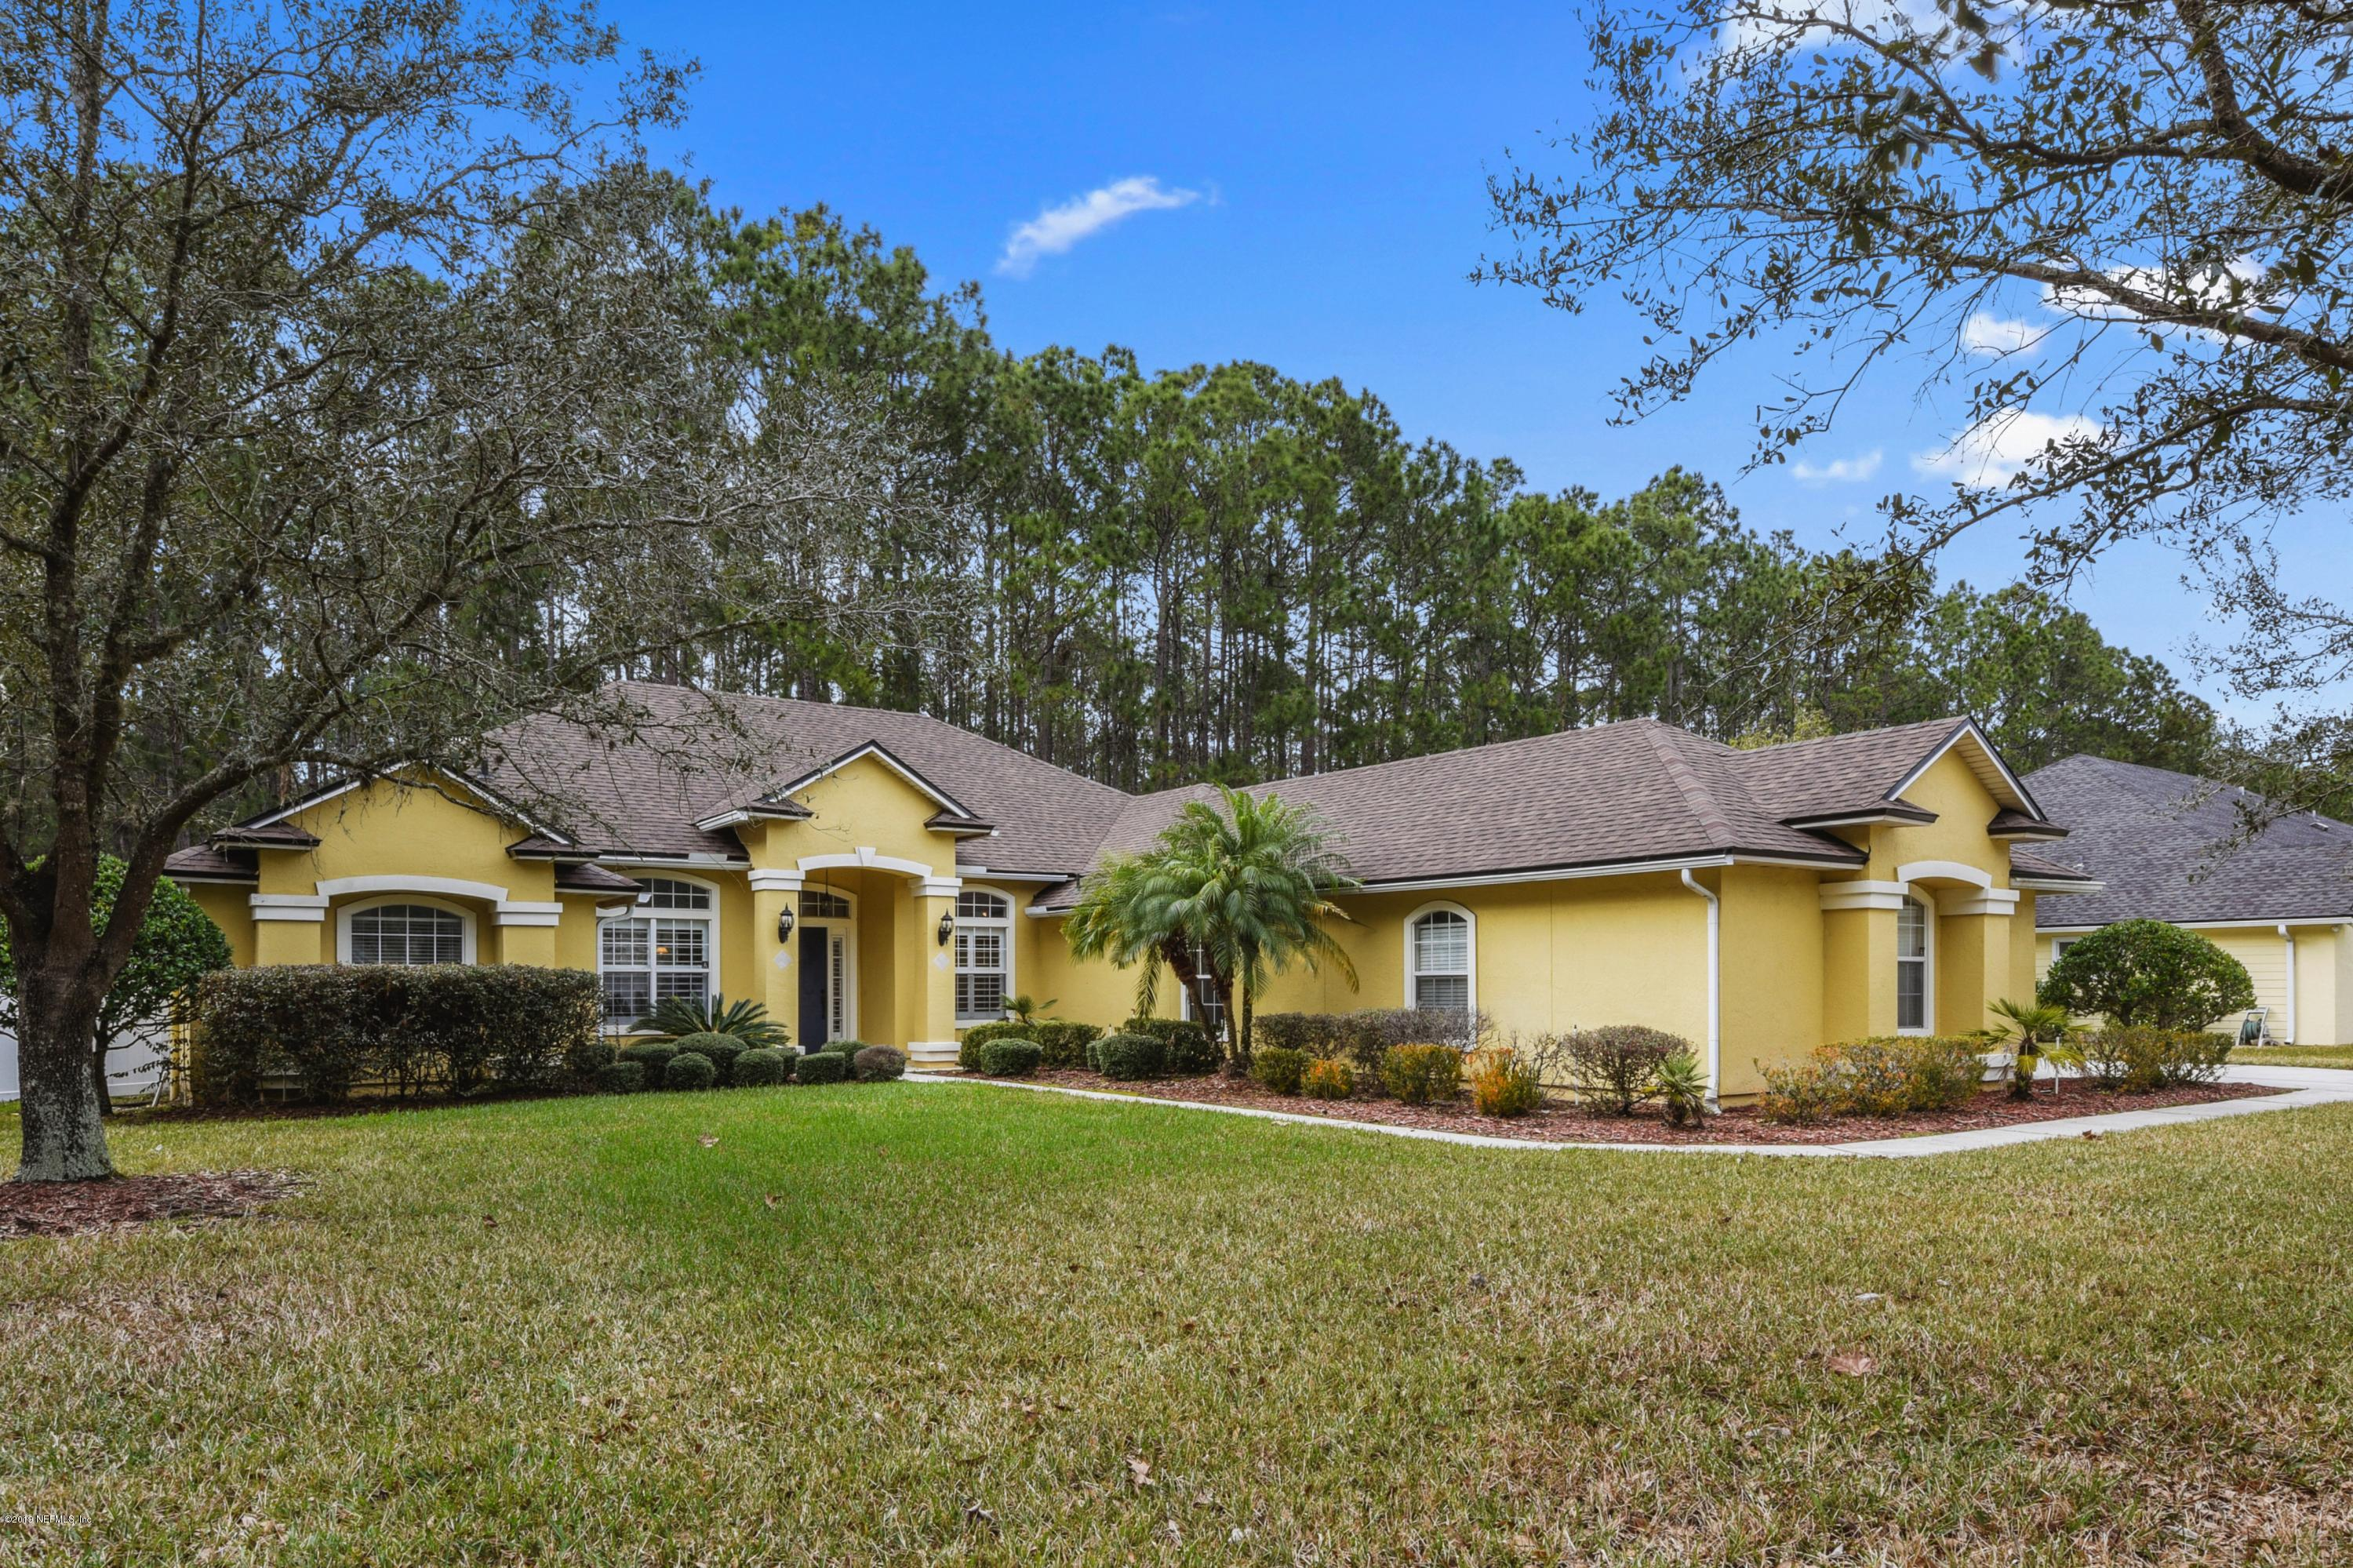 153  IVY LAKES DR, Julington Creek in ST. JOHNS County, FL 32259 Home for Sale